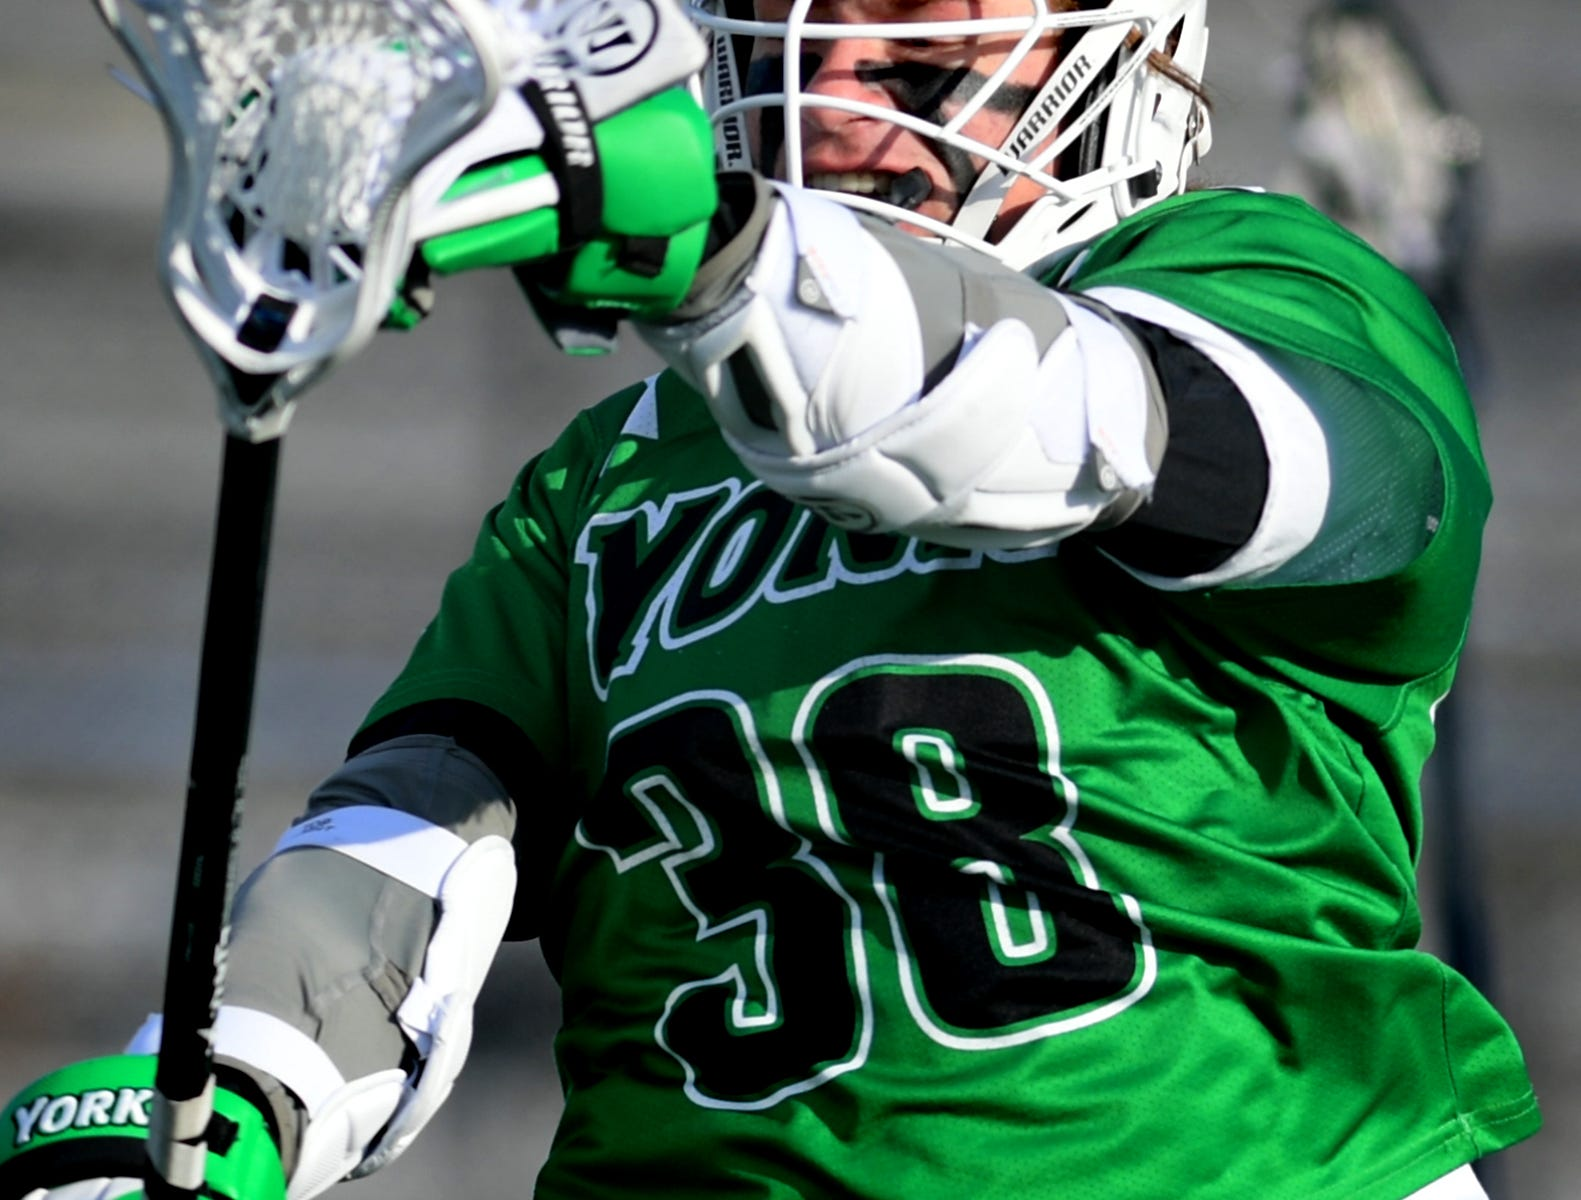 York College's Brendan McGrath celebrates his goal during York's 14-6 win over host Gettysburg College Wednesday, March 6, 2019. Both teams were ranked in the top 10 nationally in NCAA Division III men's lacrosse coming into the game. Bill Kalina photo